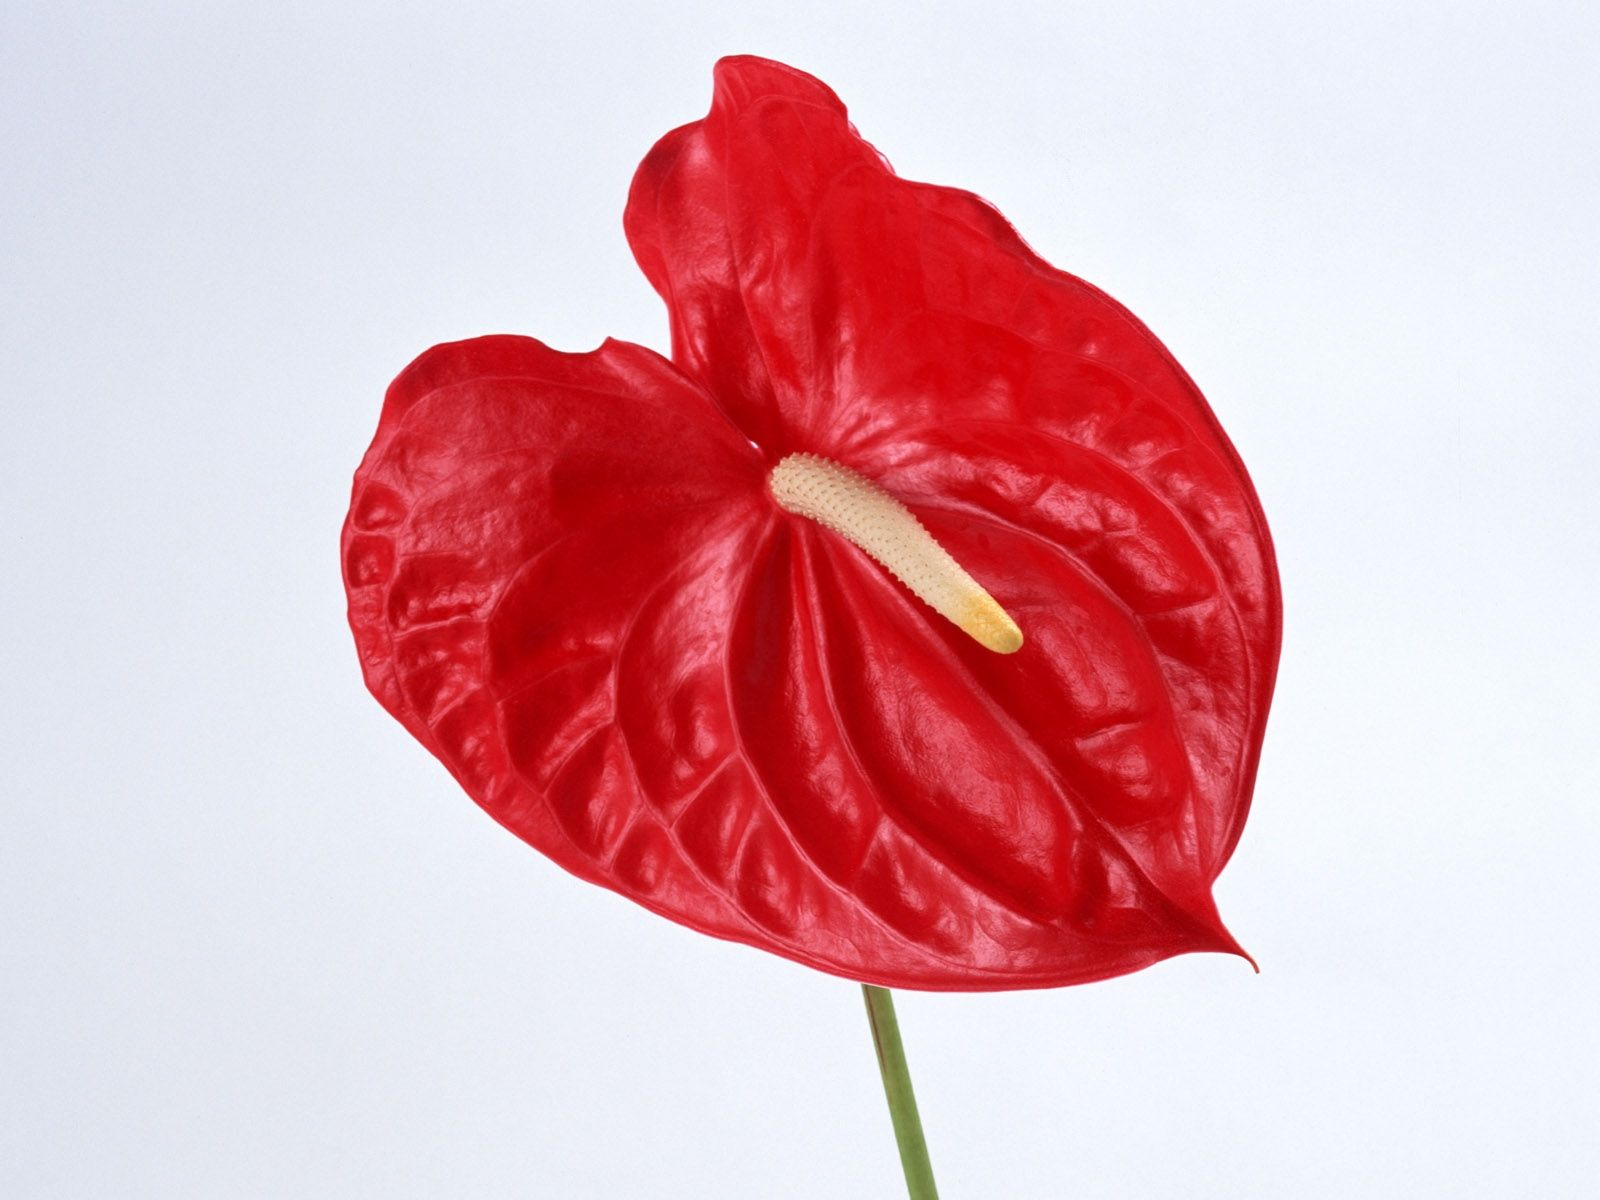 1600x1200 Wallpaper Anthurium Flower Red Stamen Anthurium Flower